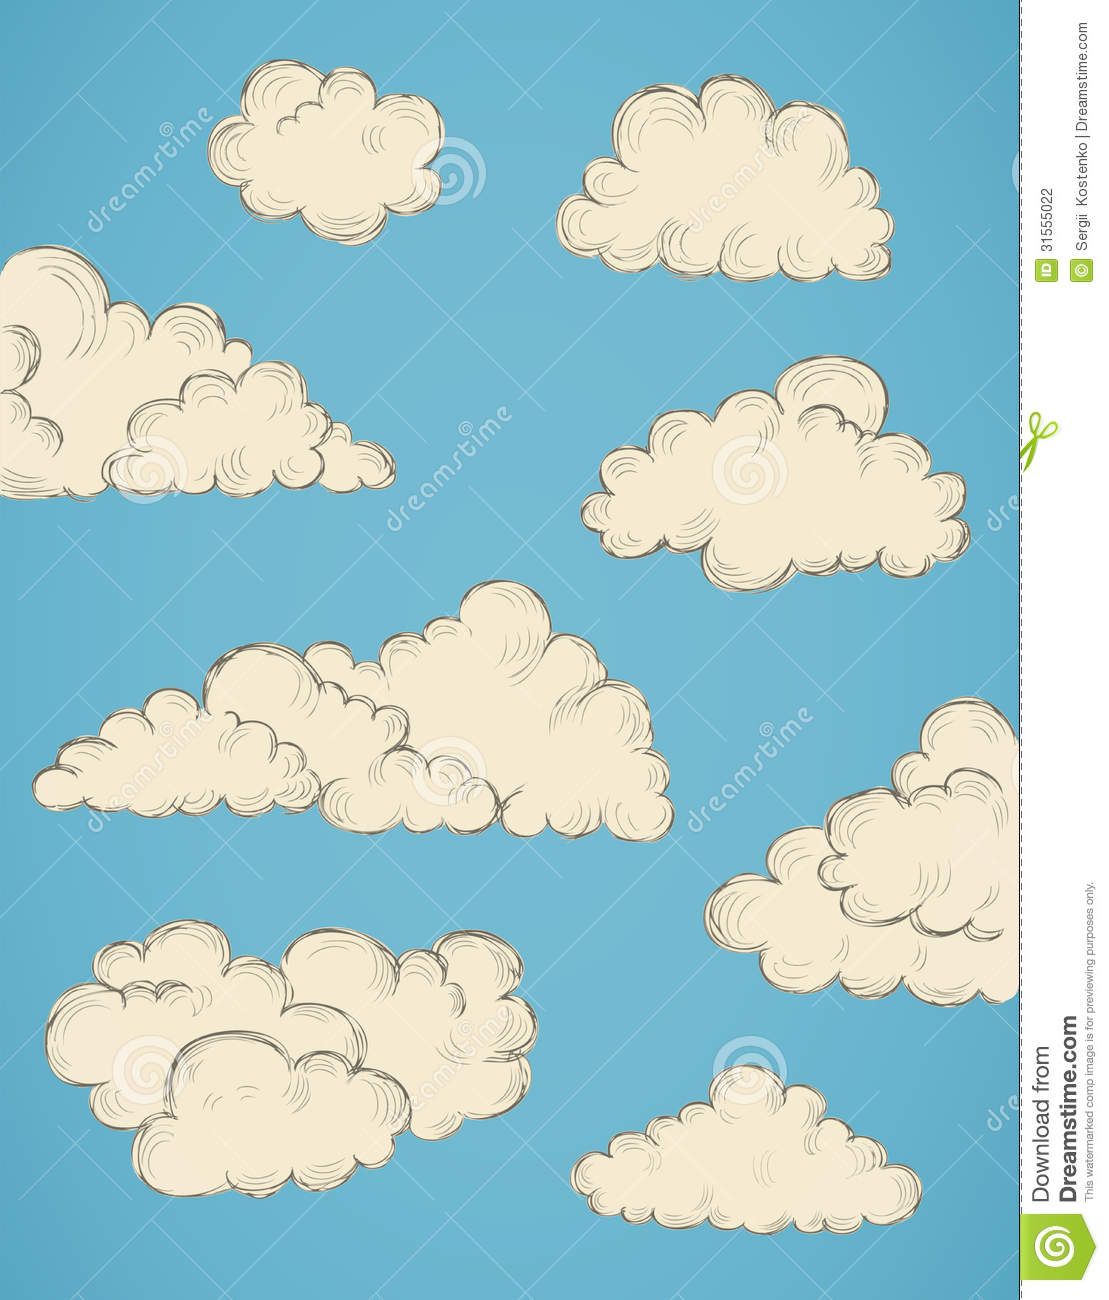 how to make a cloud drawing